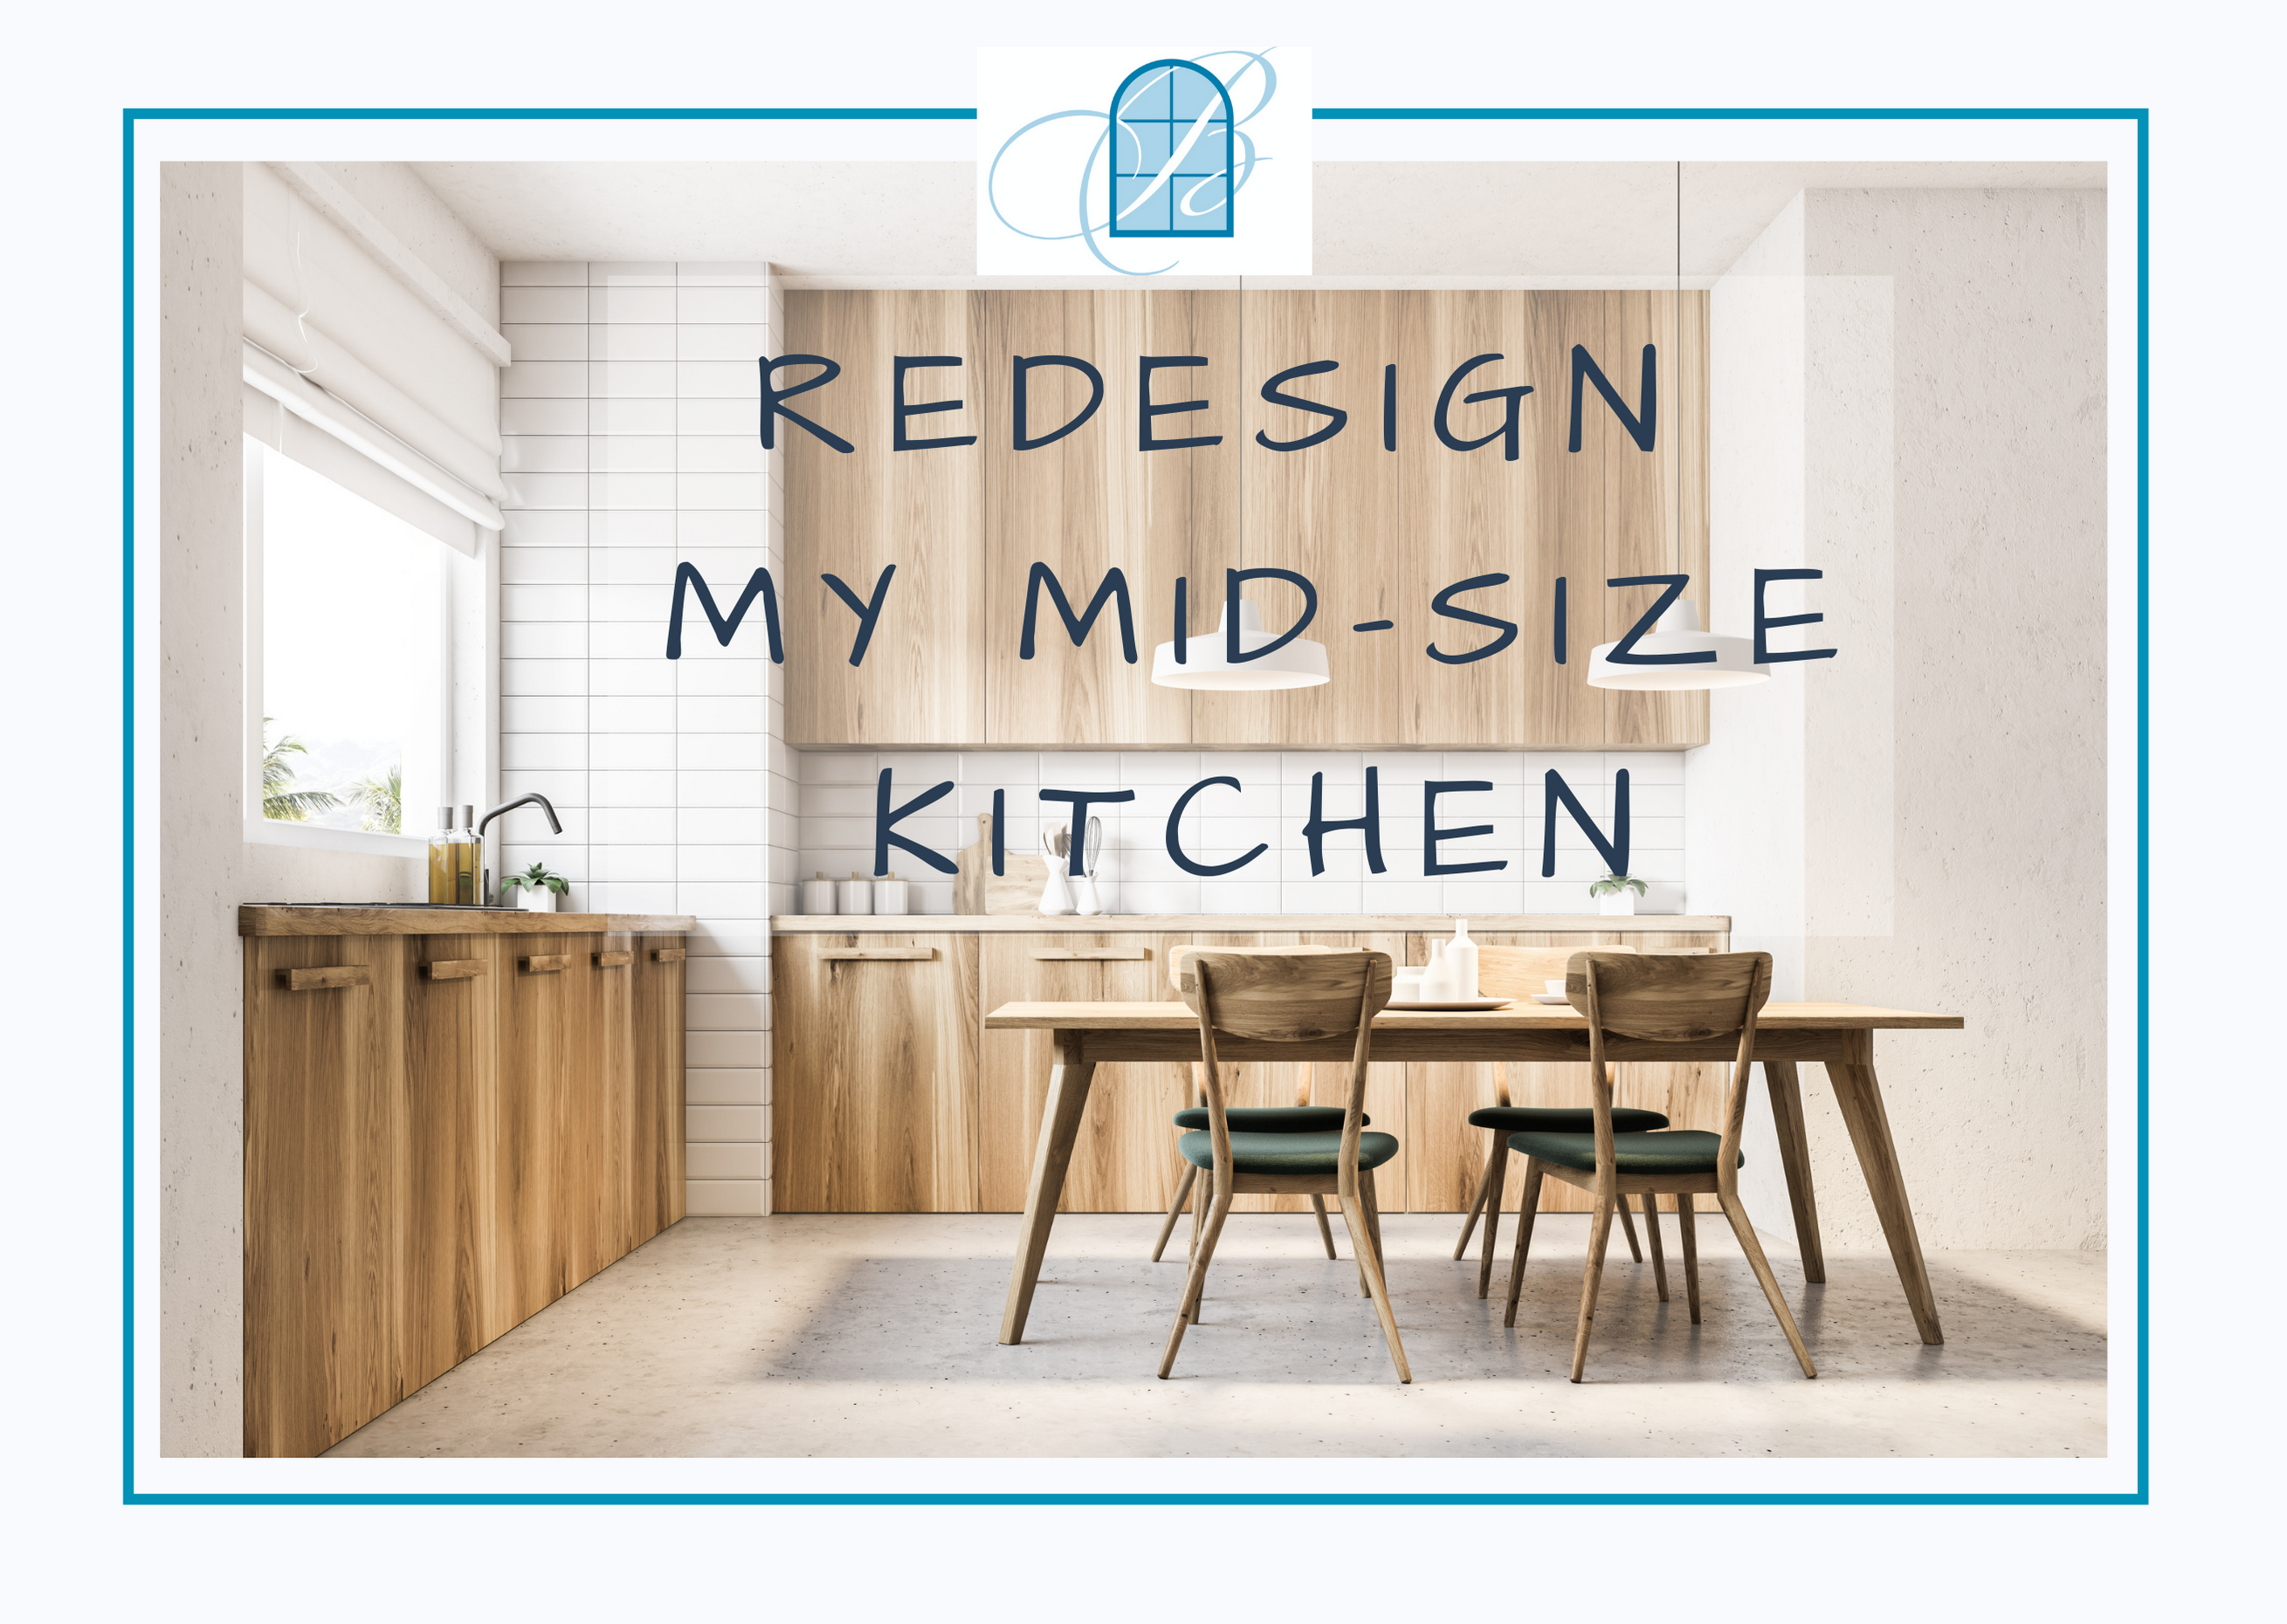 Redesign mid kitchen.png